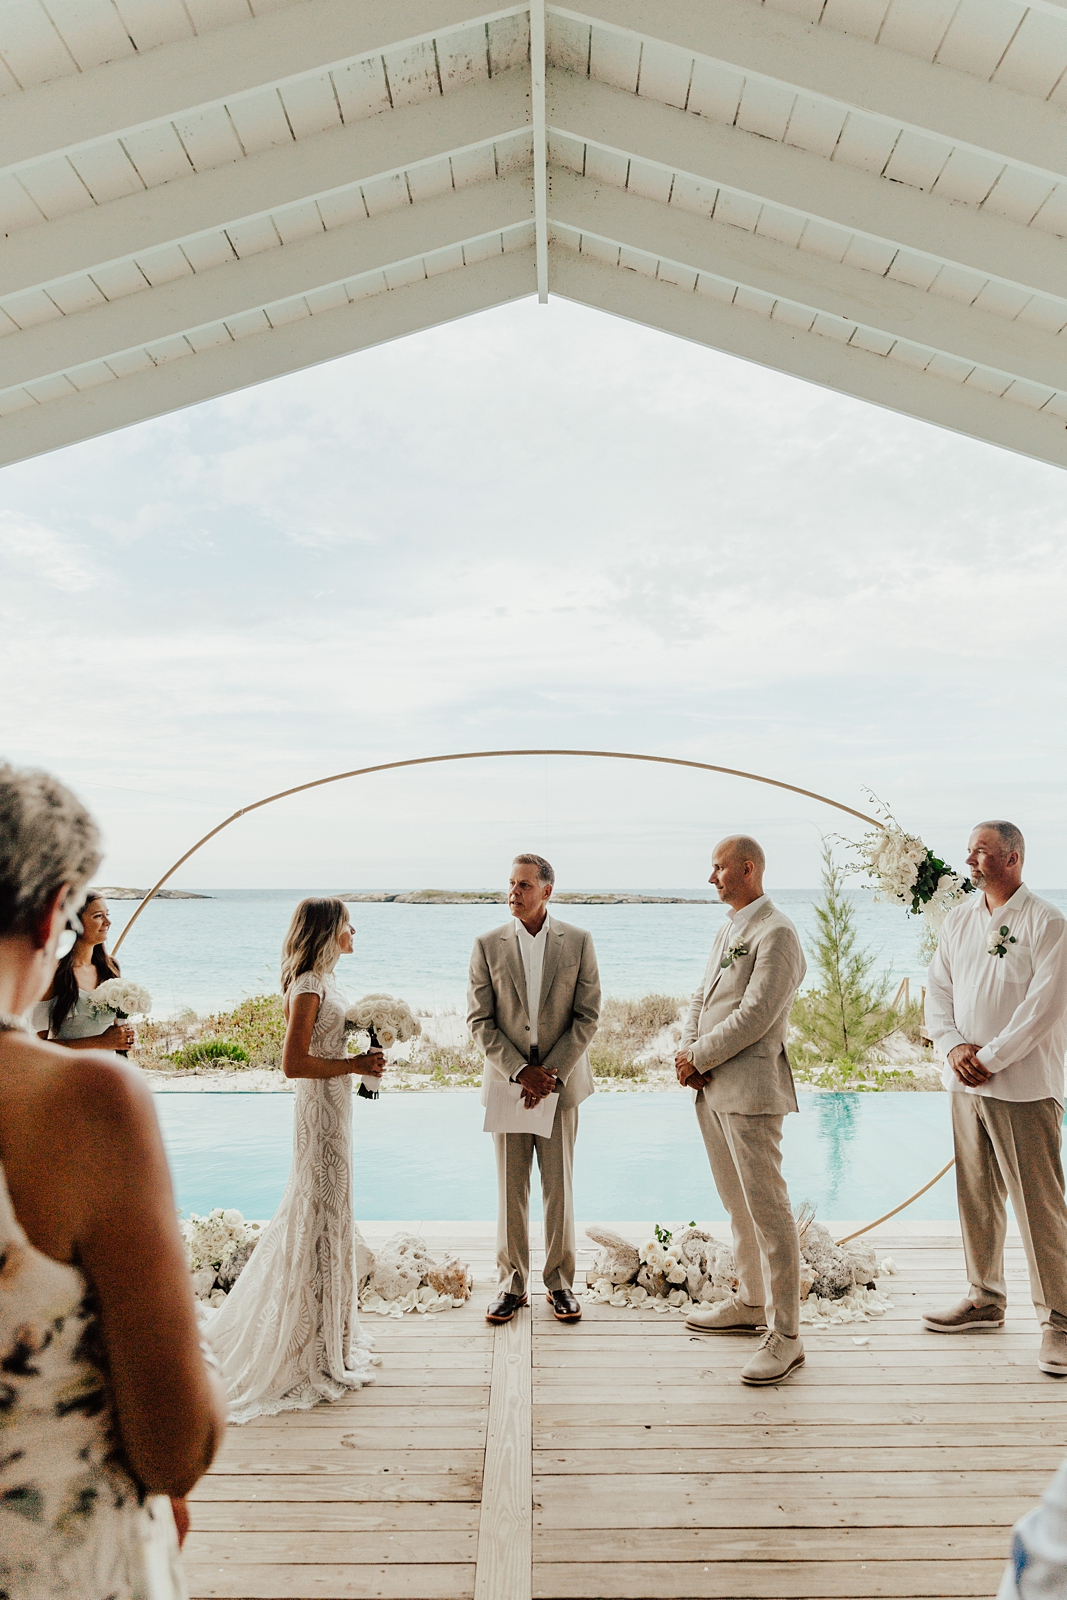 Jenni & Andrew Intimate Beach Destination Wedding in Little Exuma, Bahamas_0504.jpg